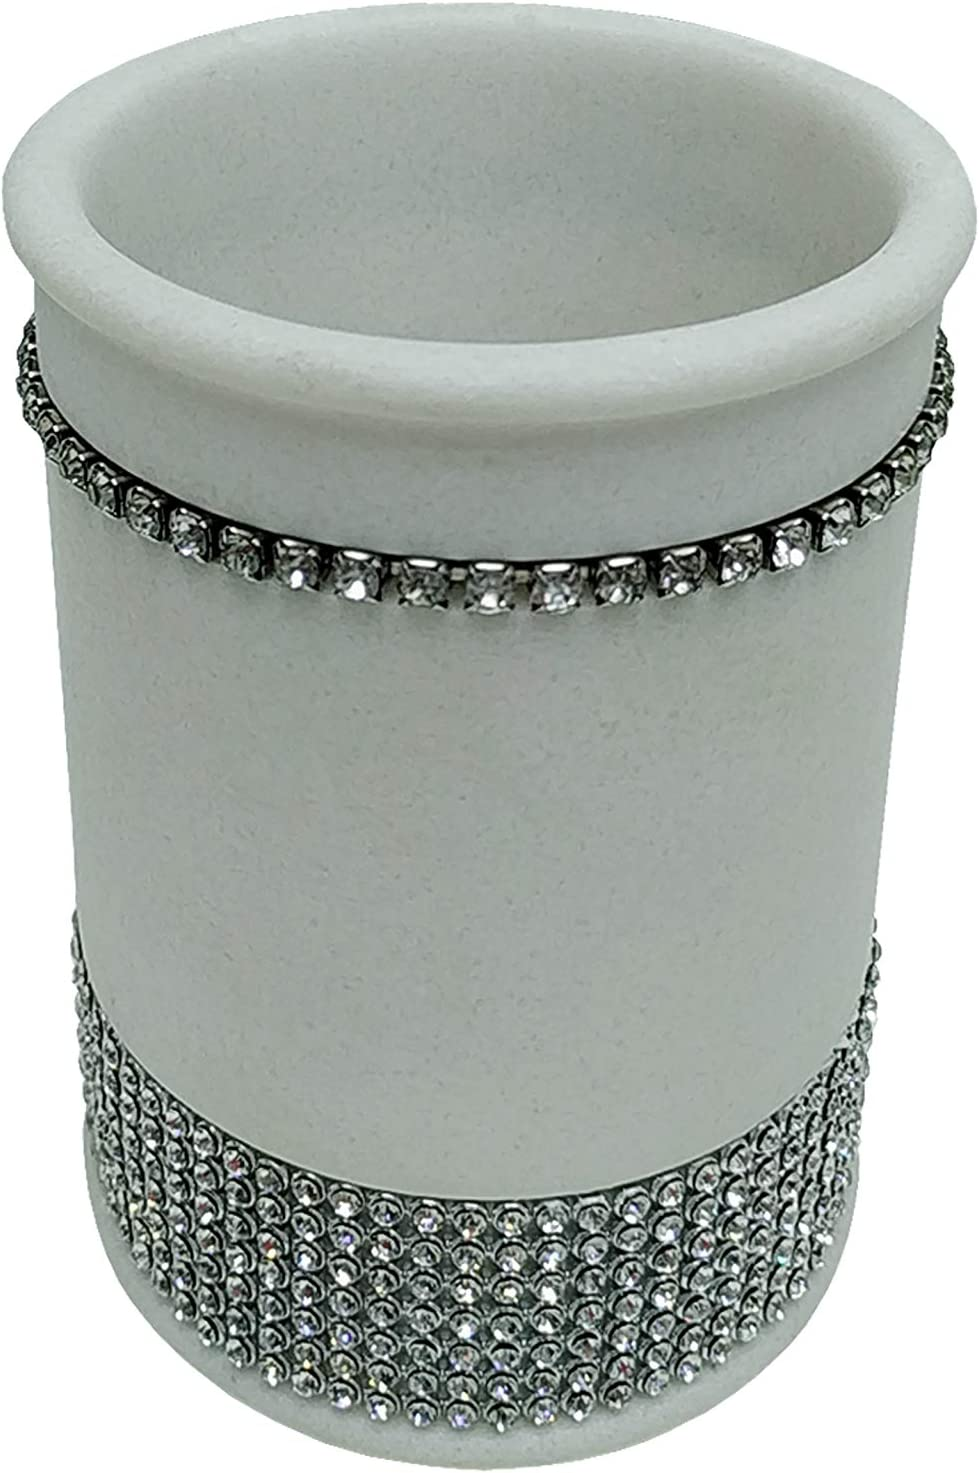 Popular Bath 942408 Now Max 62% OFF on sale Silver-White Tumbler